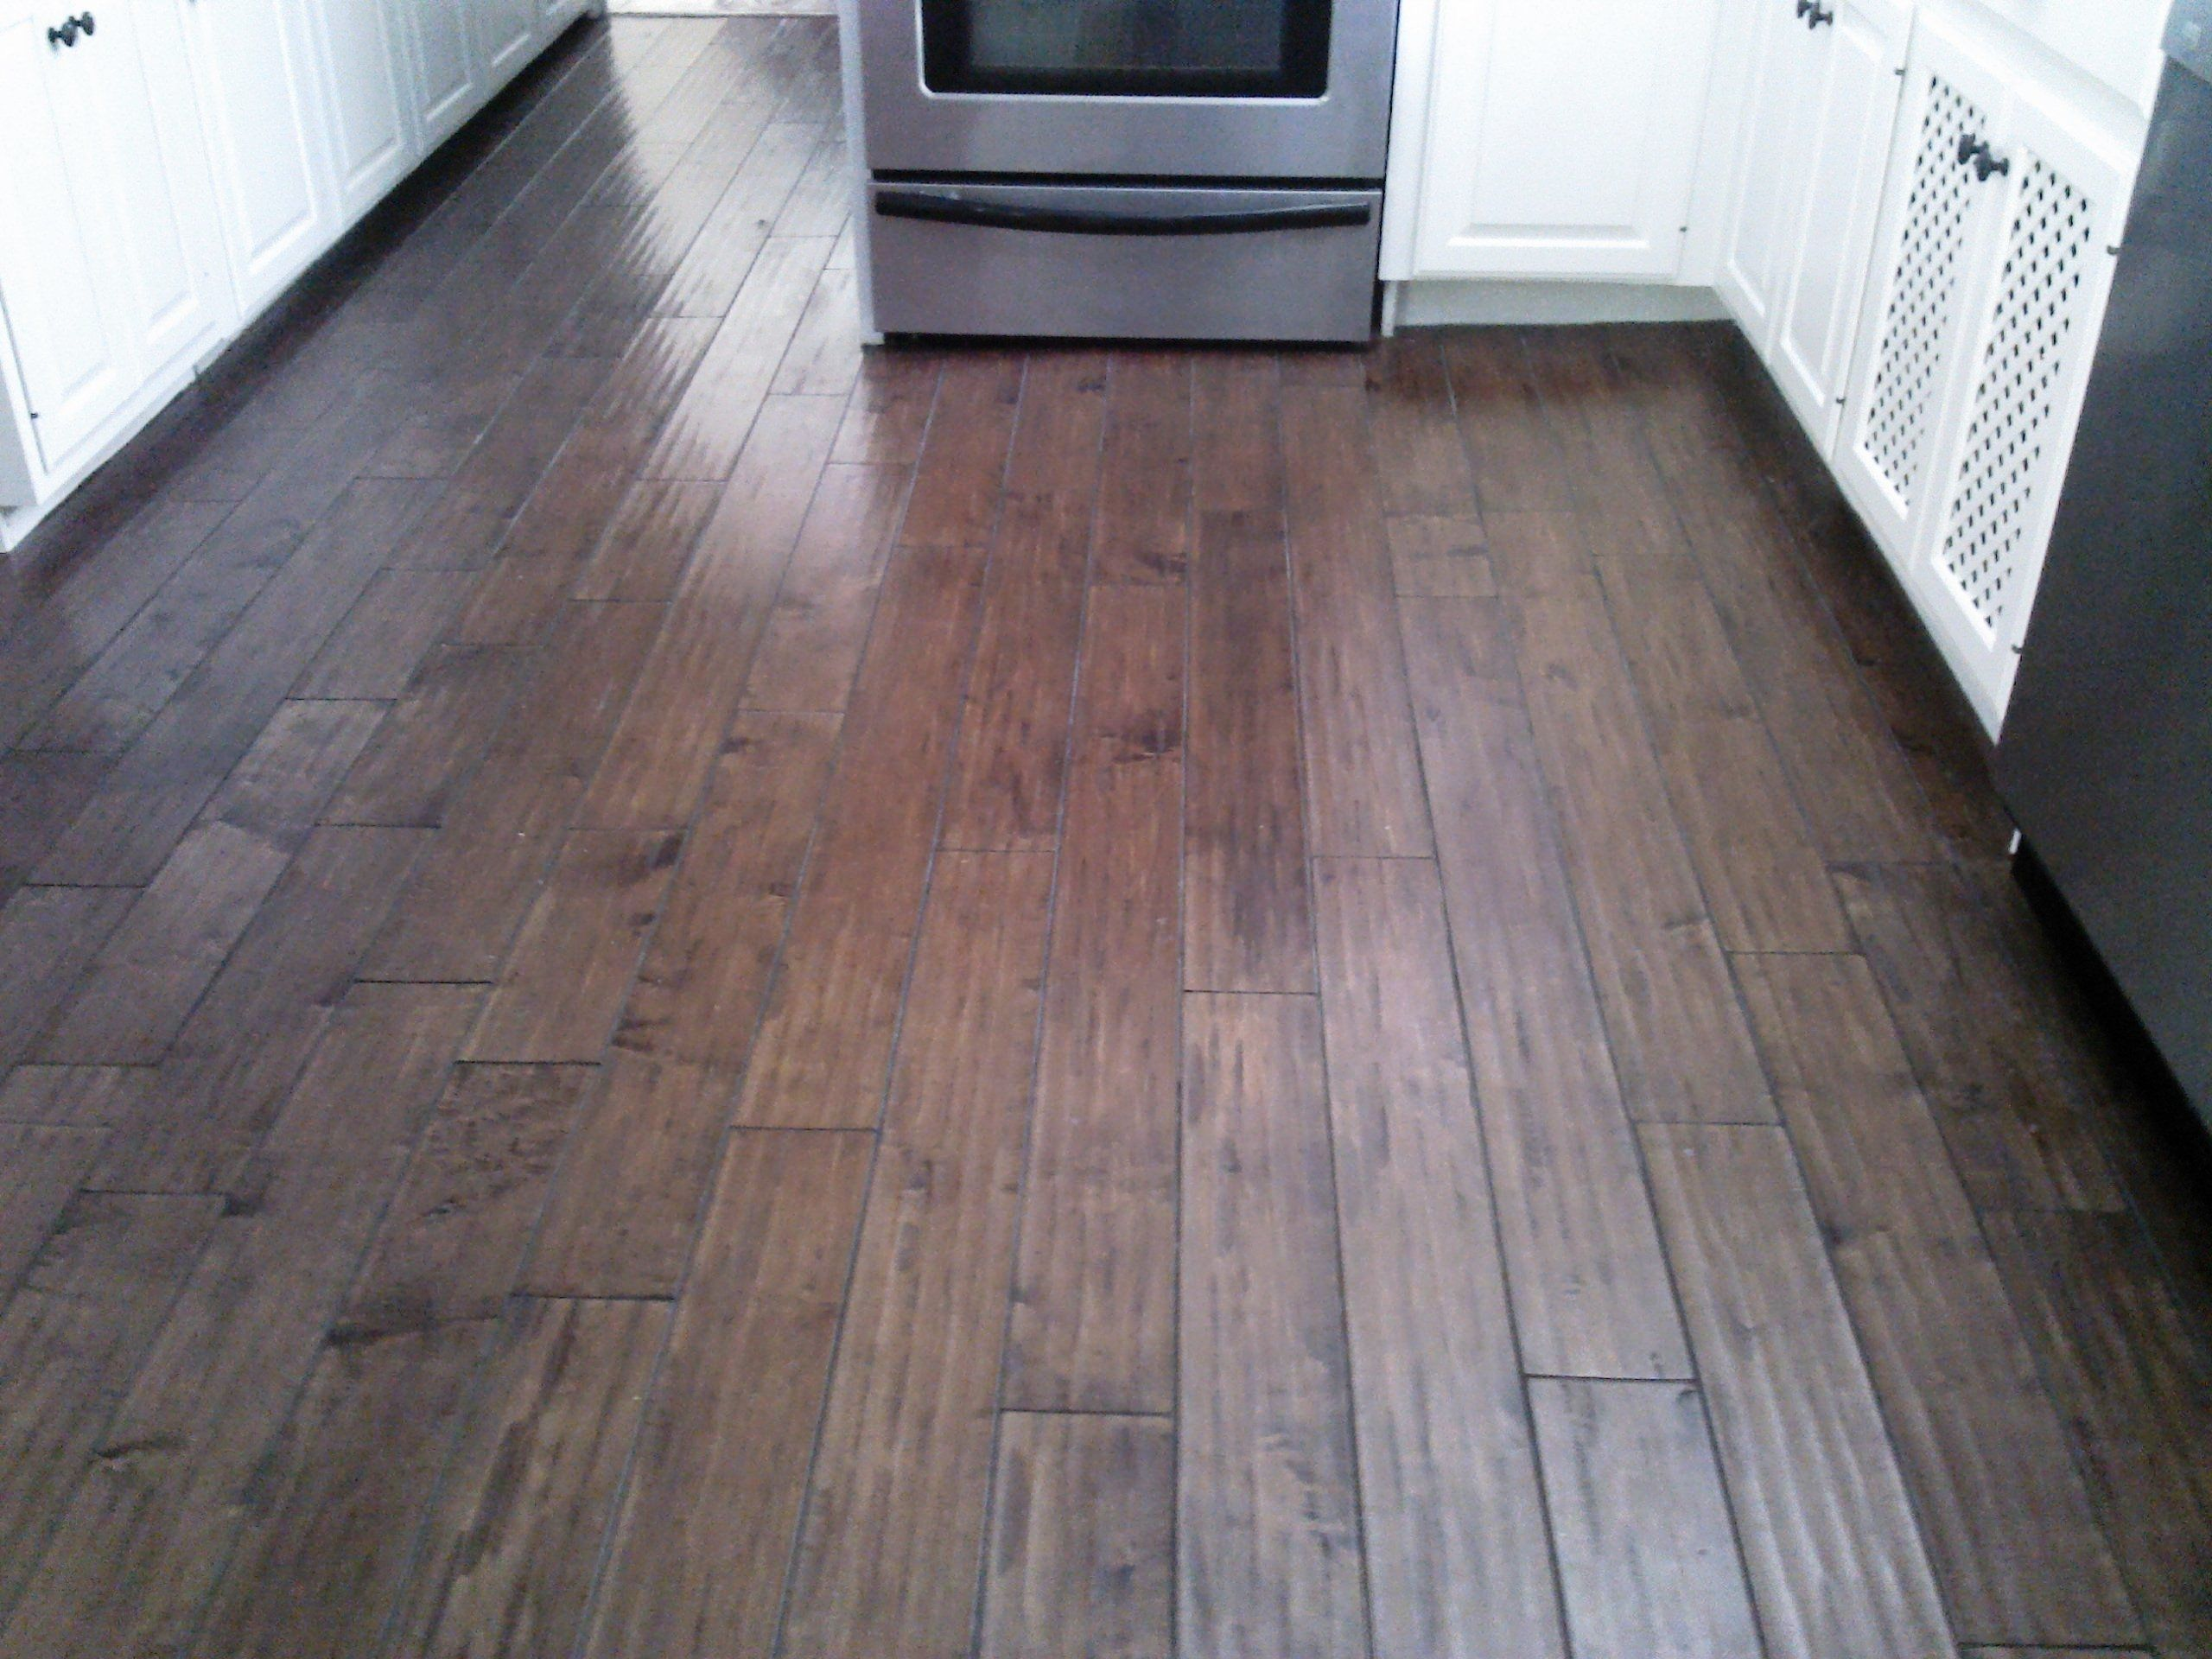 Vinyl Plank Flooring Vs Wood Look Tile Vinyl Wood Flooring